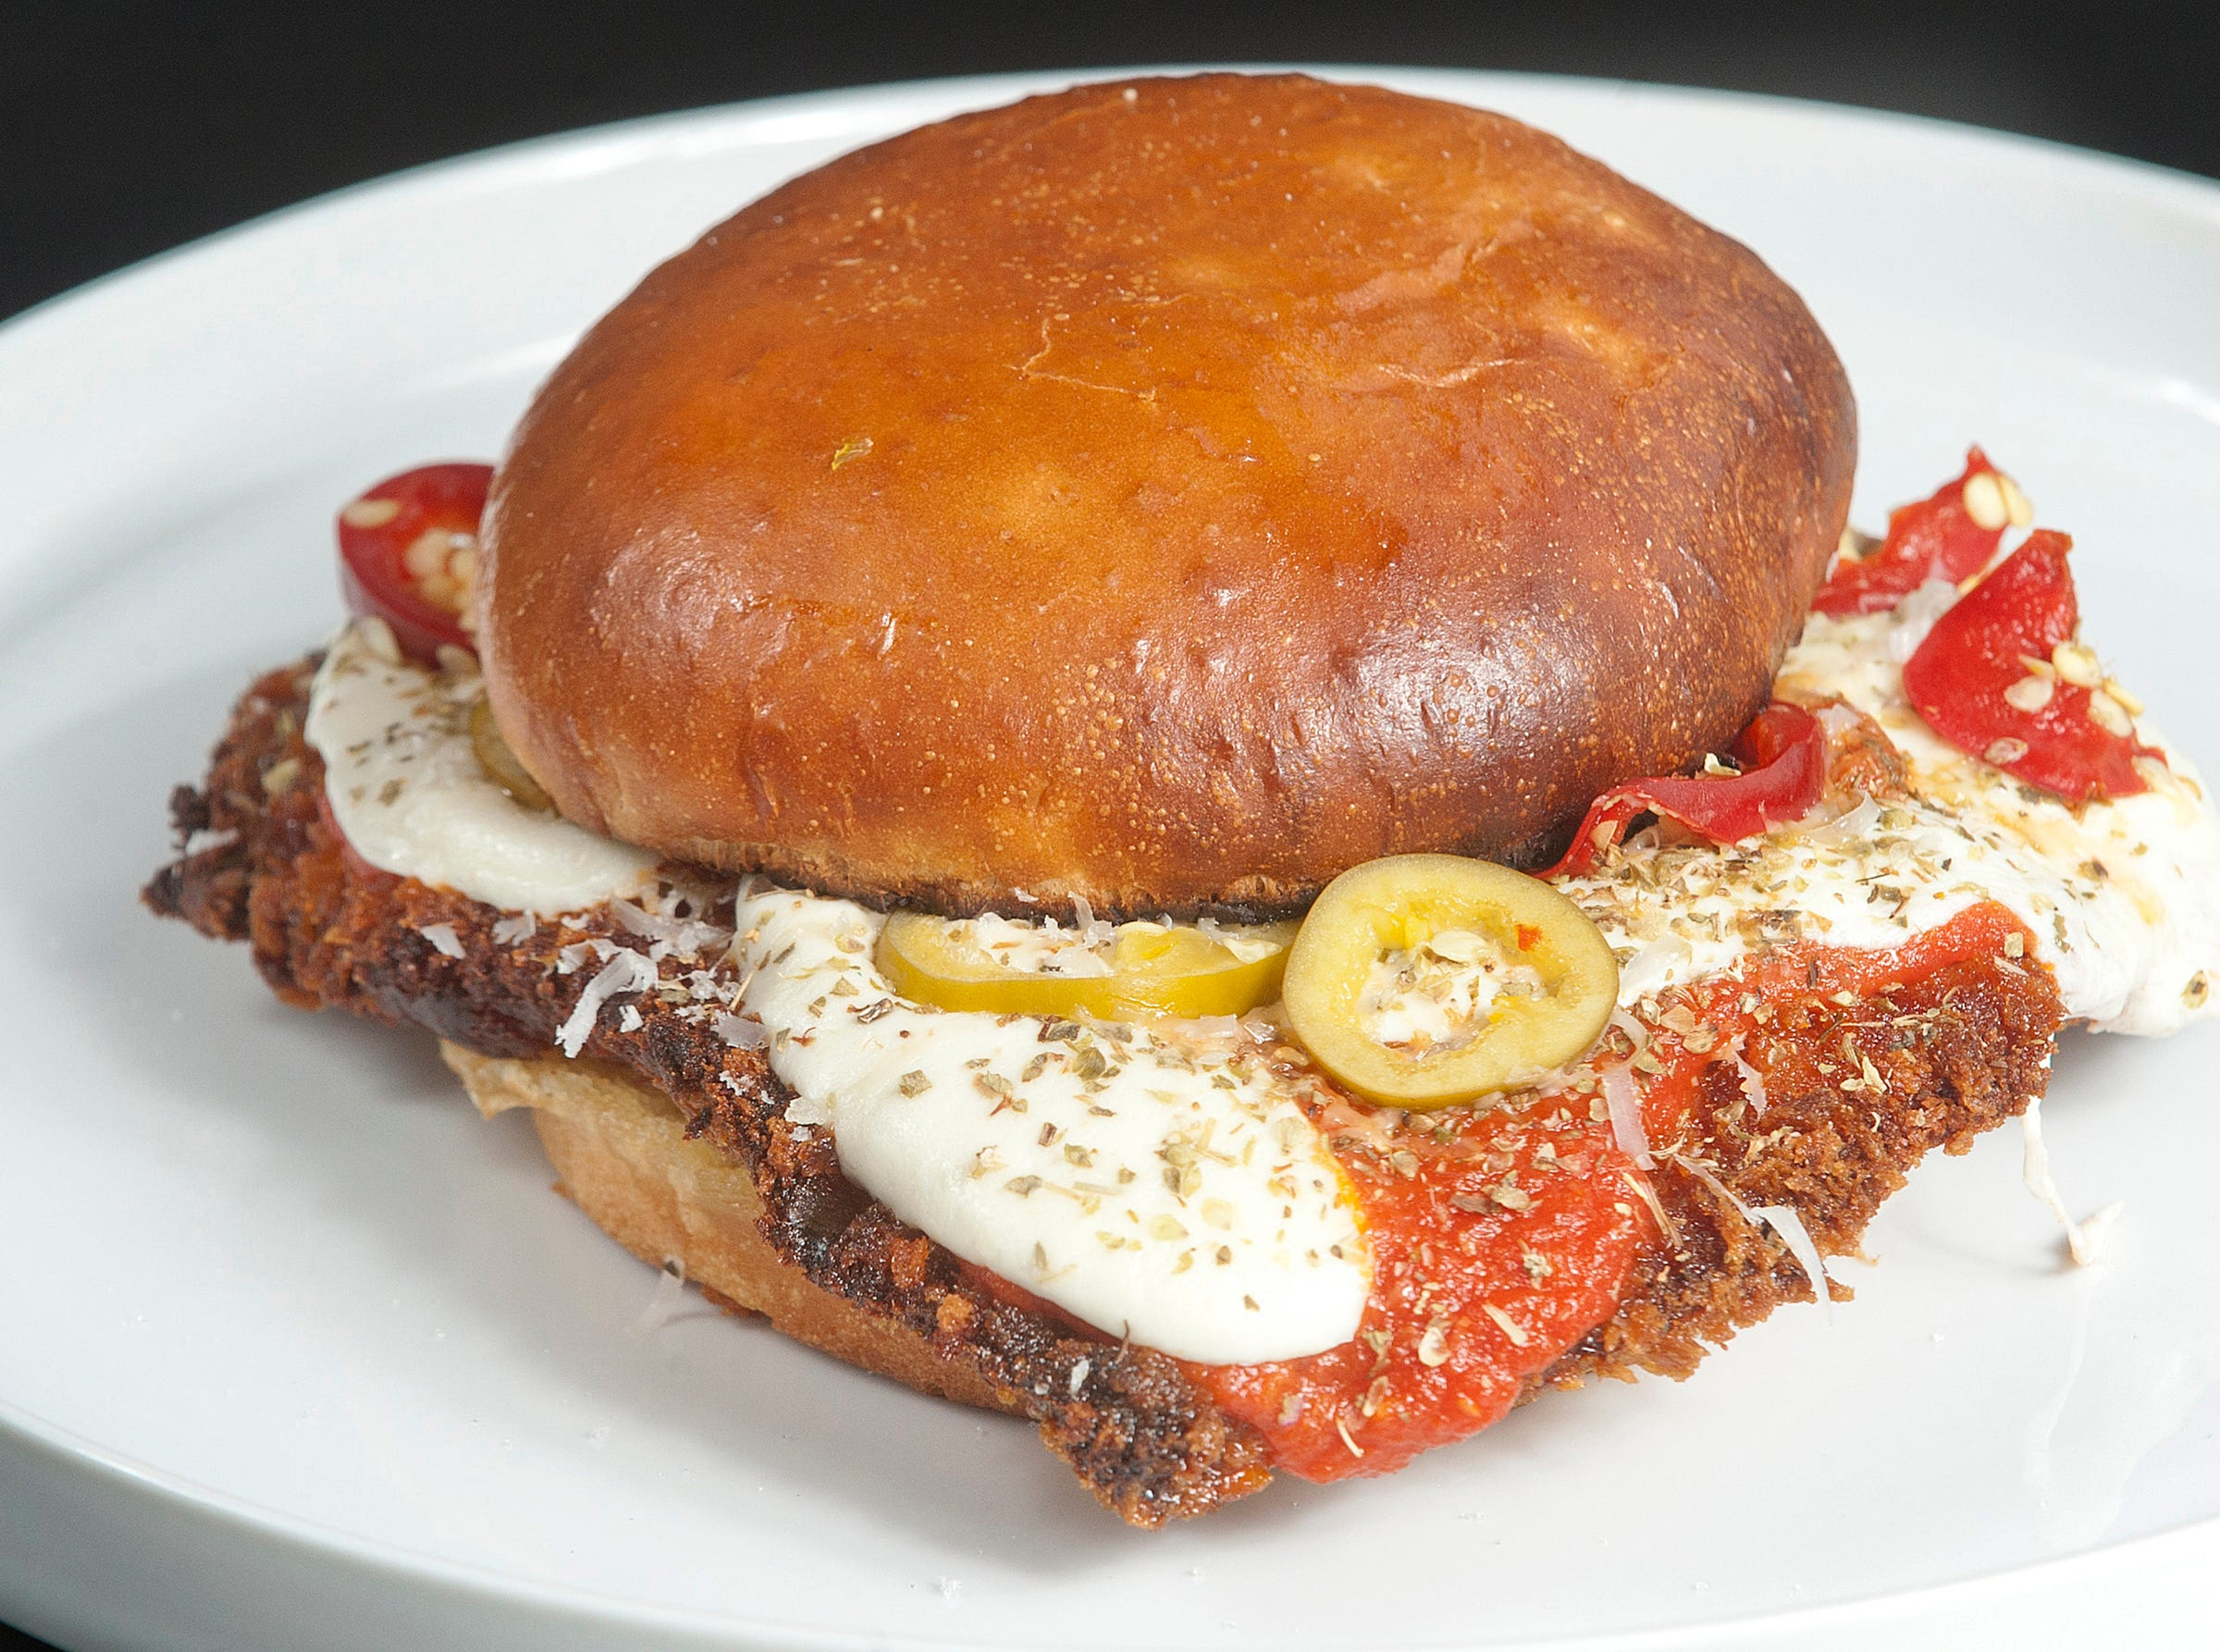 bar Vetti's Crispy Pork Parmesan sandwich is made with a crispy pork loin served on a pretzel bun and topped with tomato sauce, mozzarella and parmesan cheeses and pickled peppers. July 10, 2018